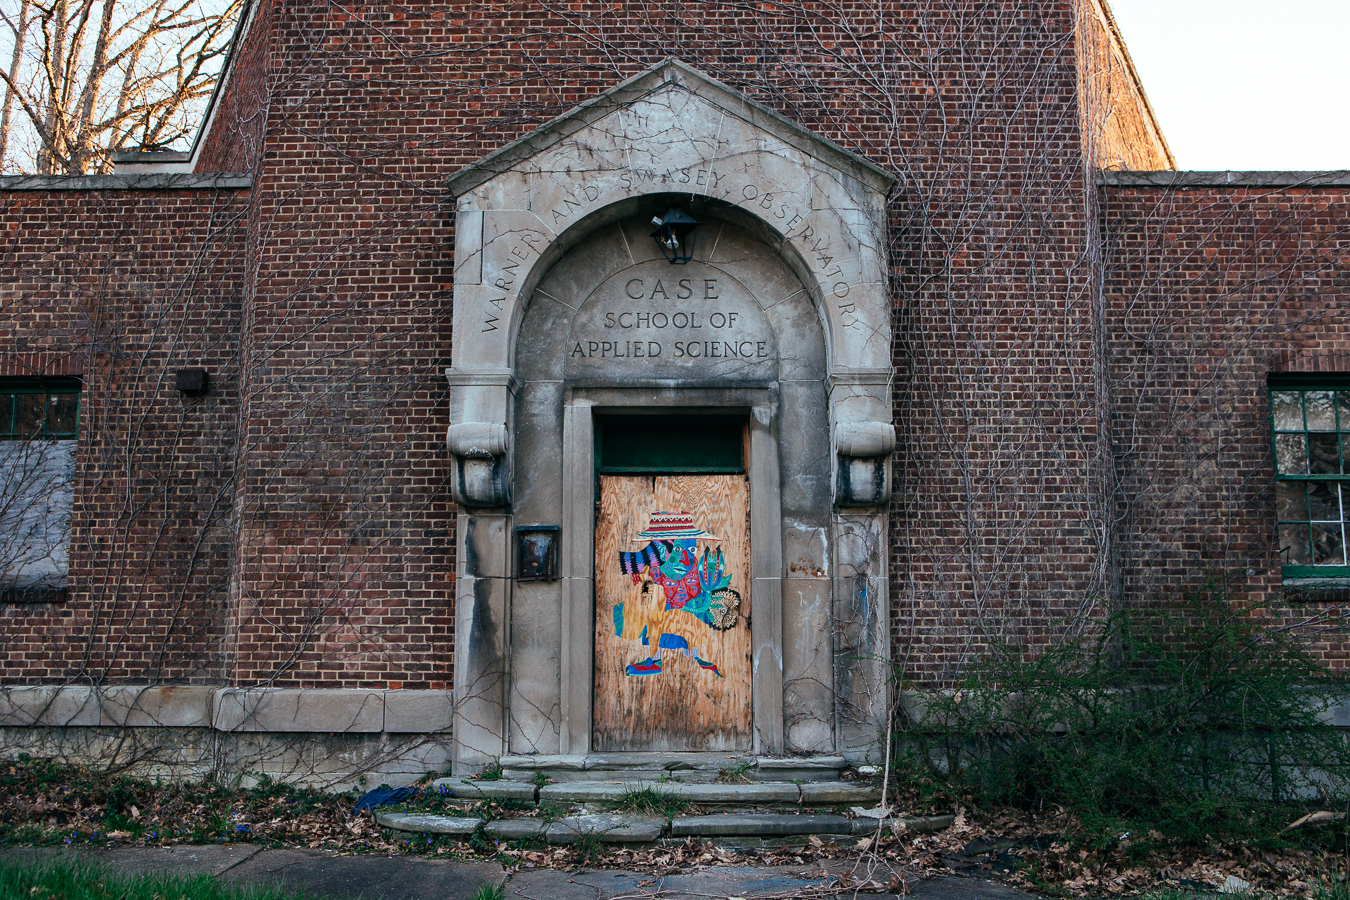 My 1st location was an abandoned building   in a sketchy neighborhood of   Cleveland, the Warner and Swasey Observatory.